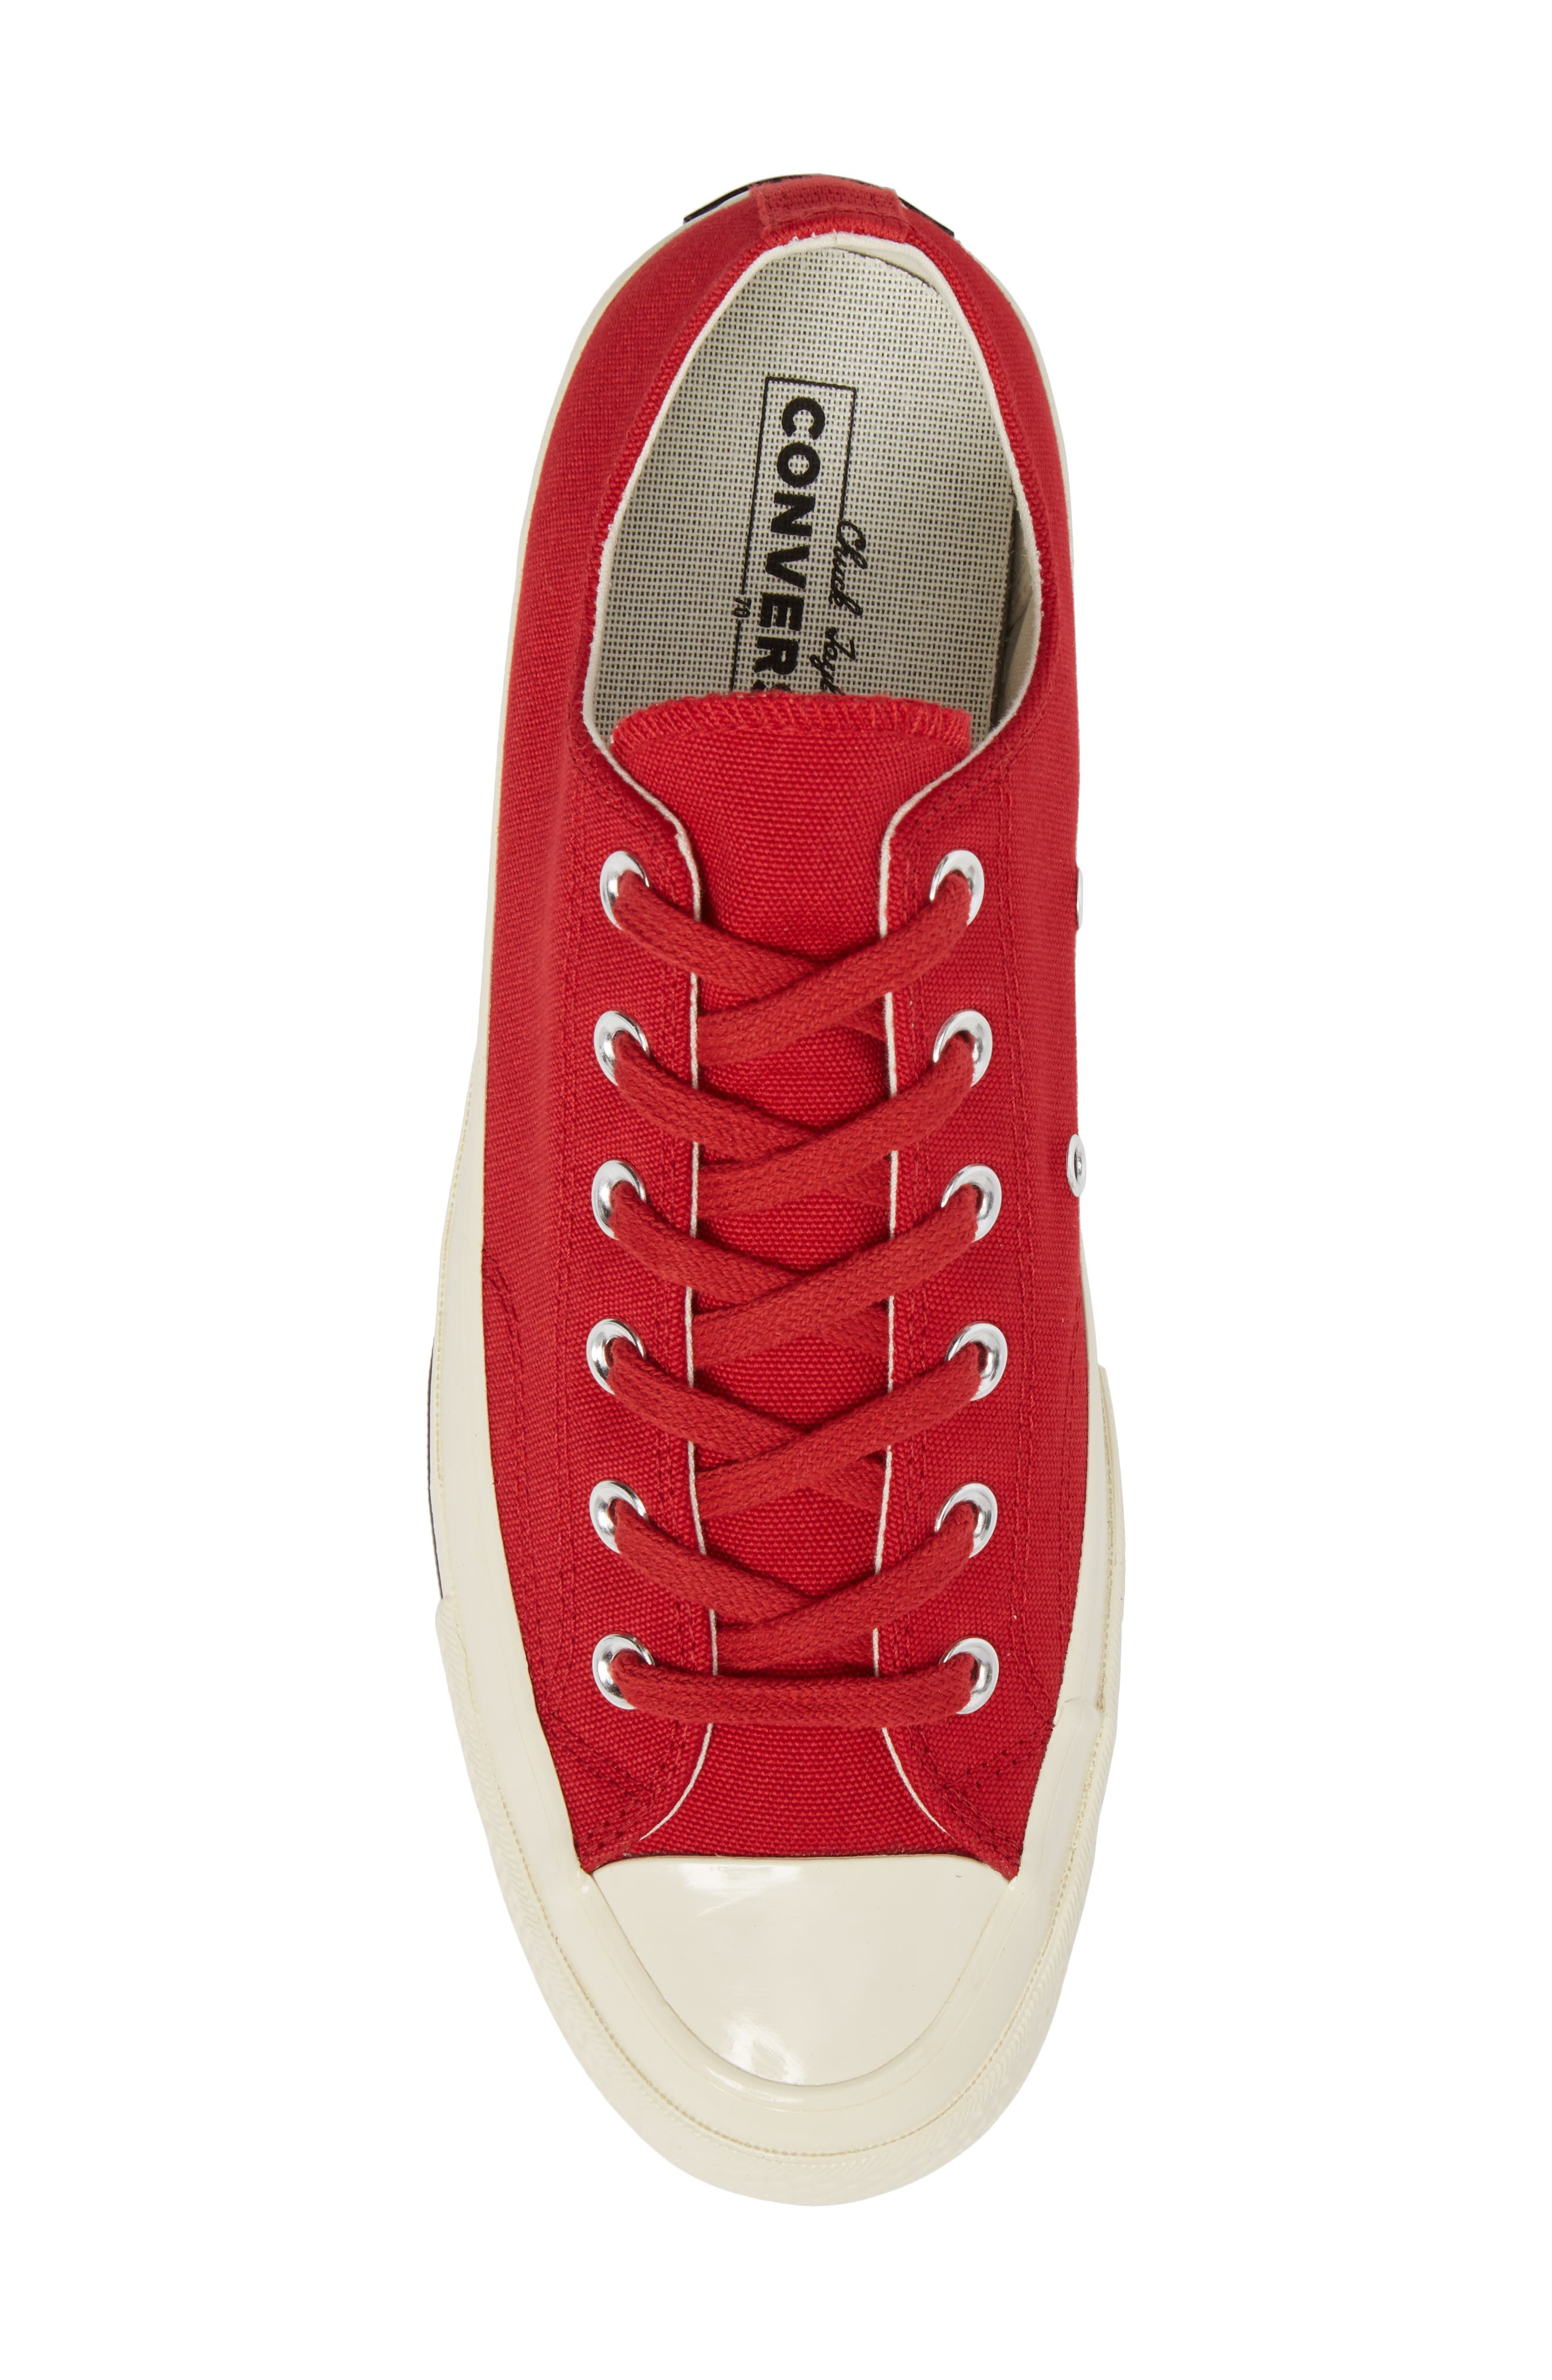 Chuck Taylor<sup>®</sup> All Star<sup>®</sup> '70s Heritage Low Top Sneaker,                             Alternate thumbnail 5, color,                             600